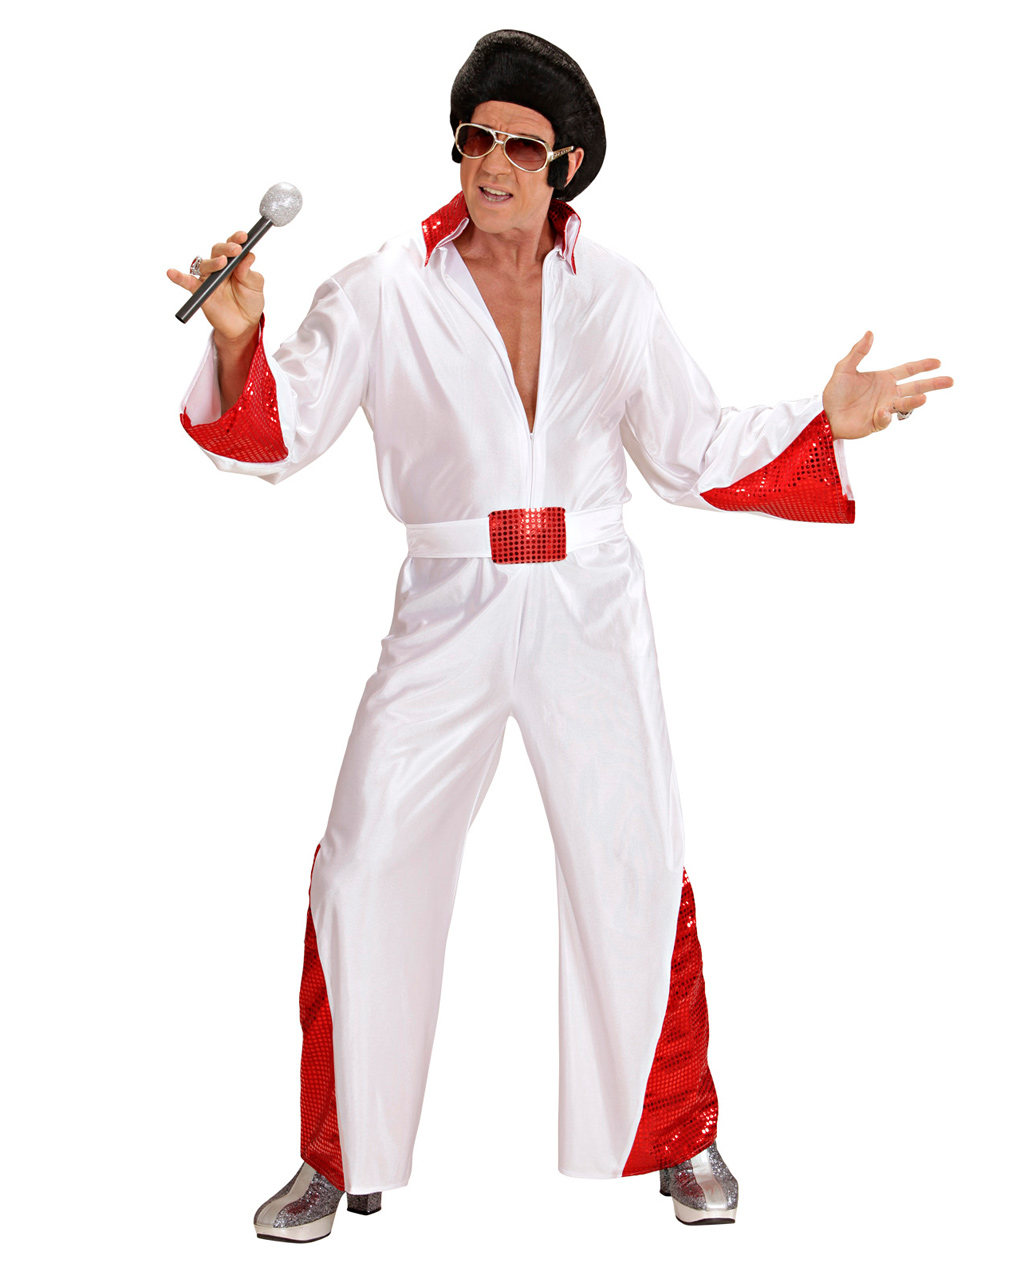 King of Rock costume with red glitter S   Rock `n` Roll costume for ... ddb787d55e2b